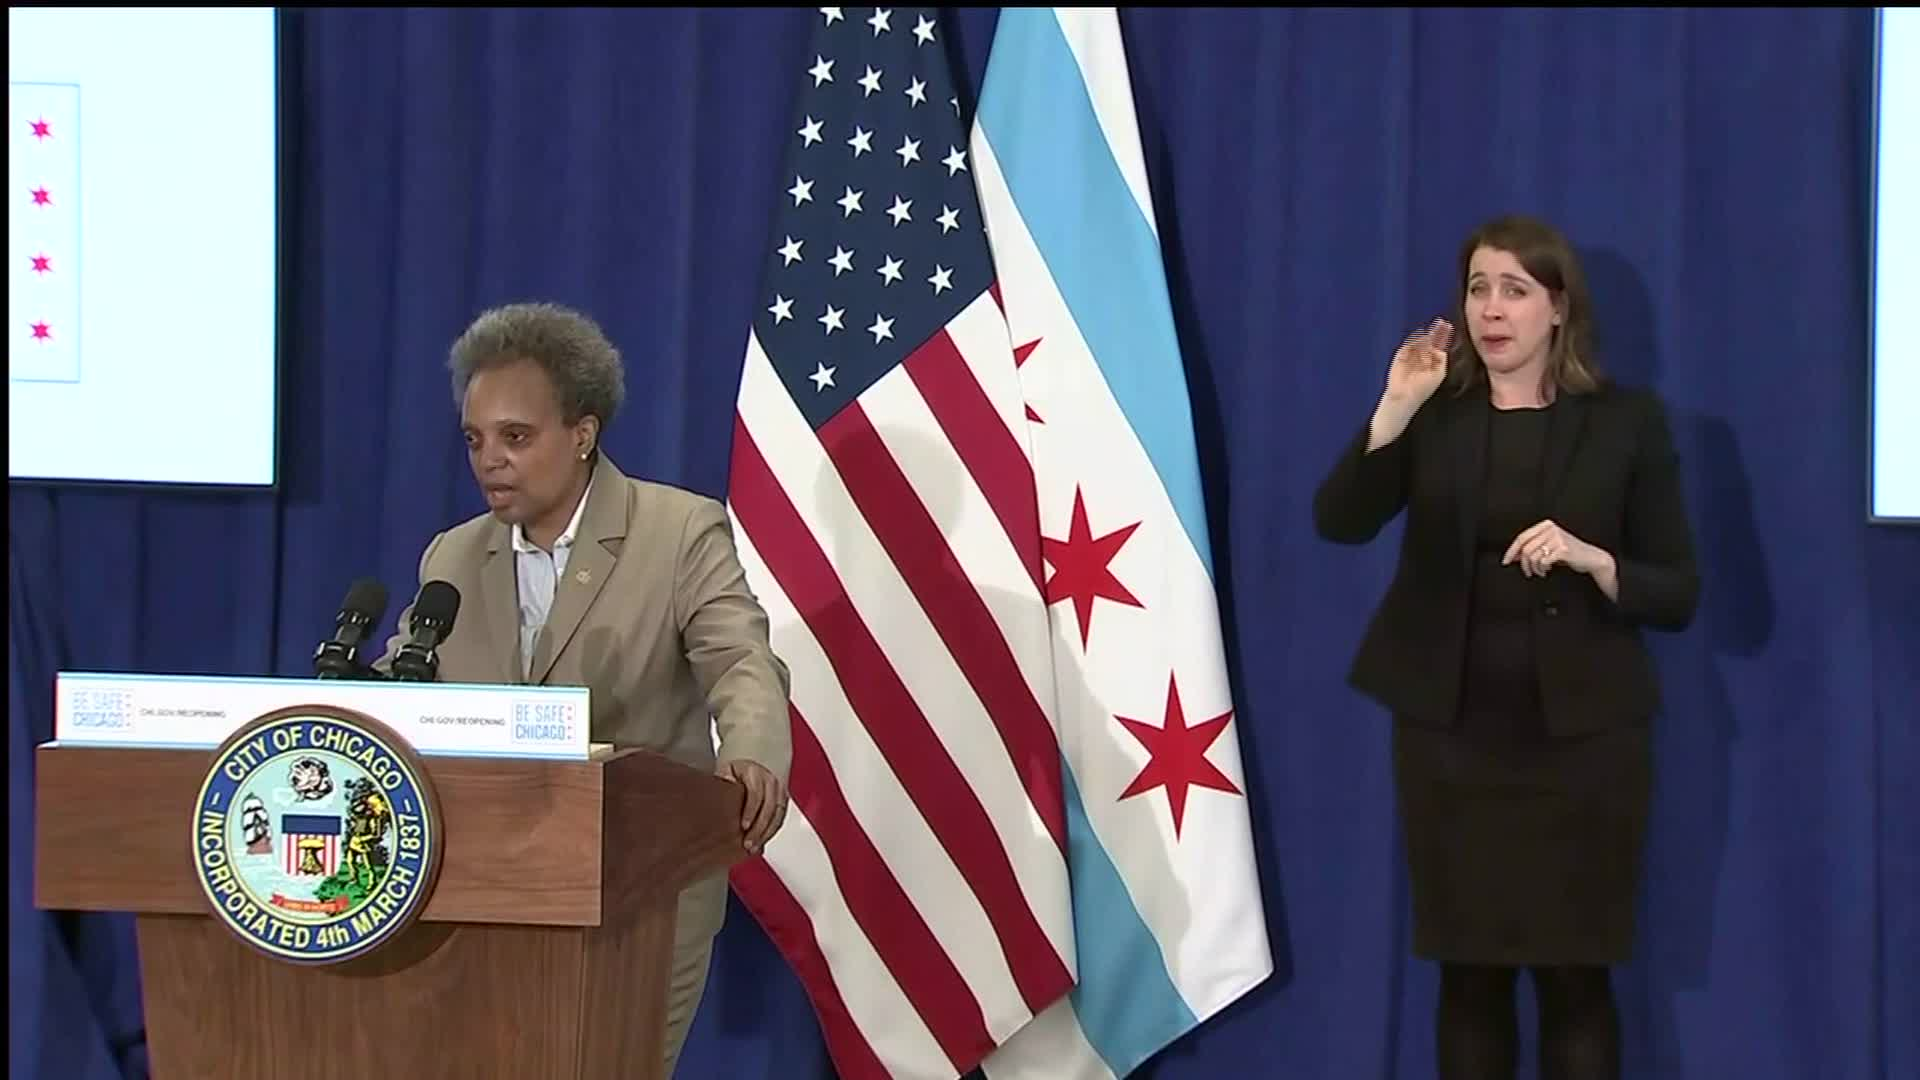 Chicago Mayor Lori Lightfoot speaks during a press conference in Chicago on May 28.